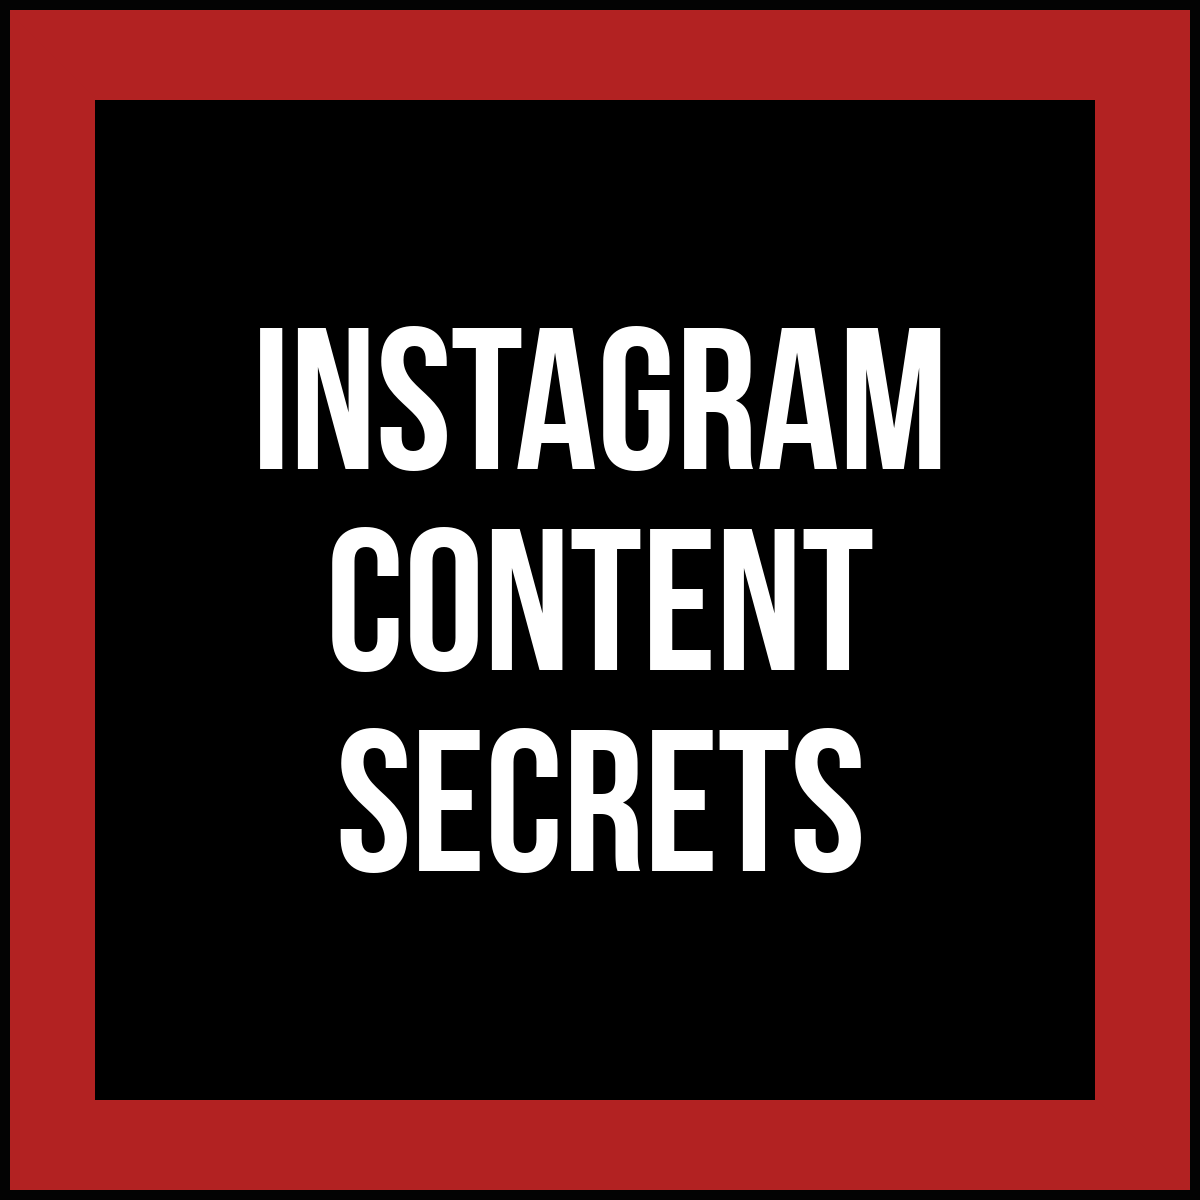 Instagram Content Secrets Create Your Powerful Visual